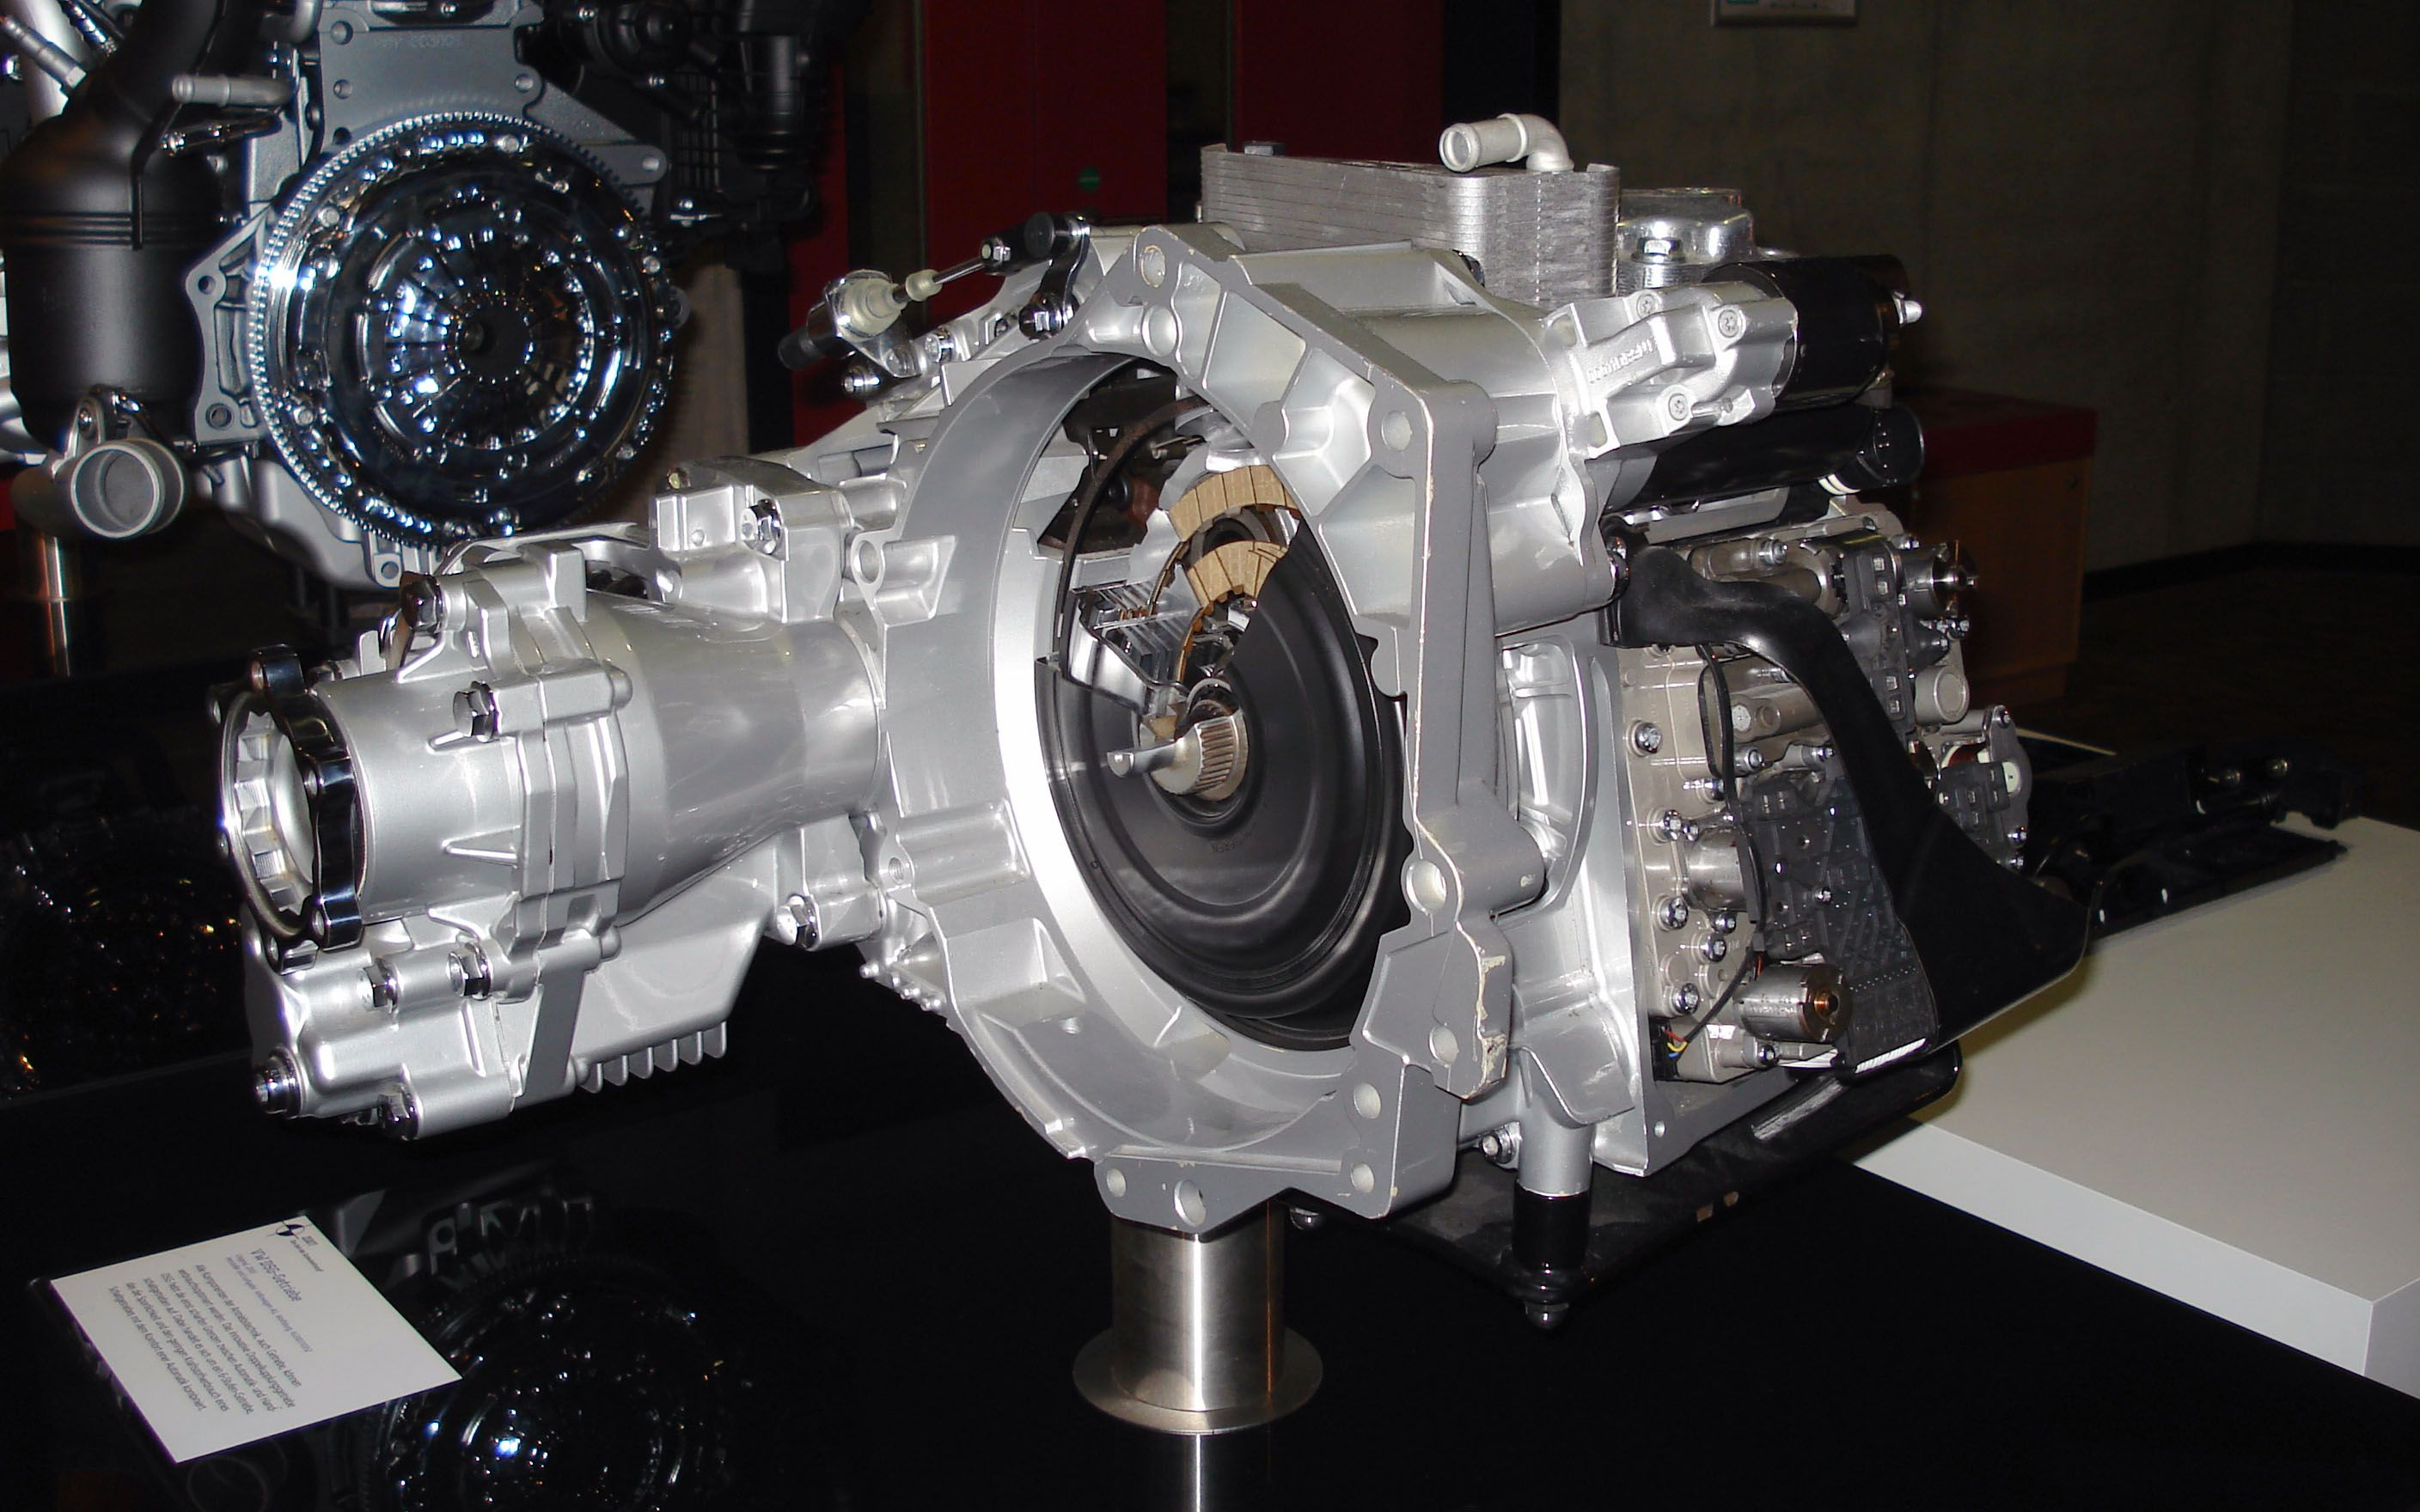 vw cabrio  plenty  transmission problems image source wikimedia commons pump